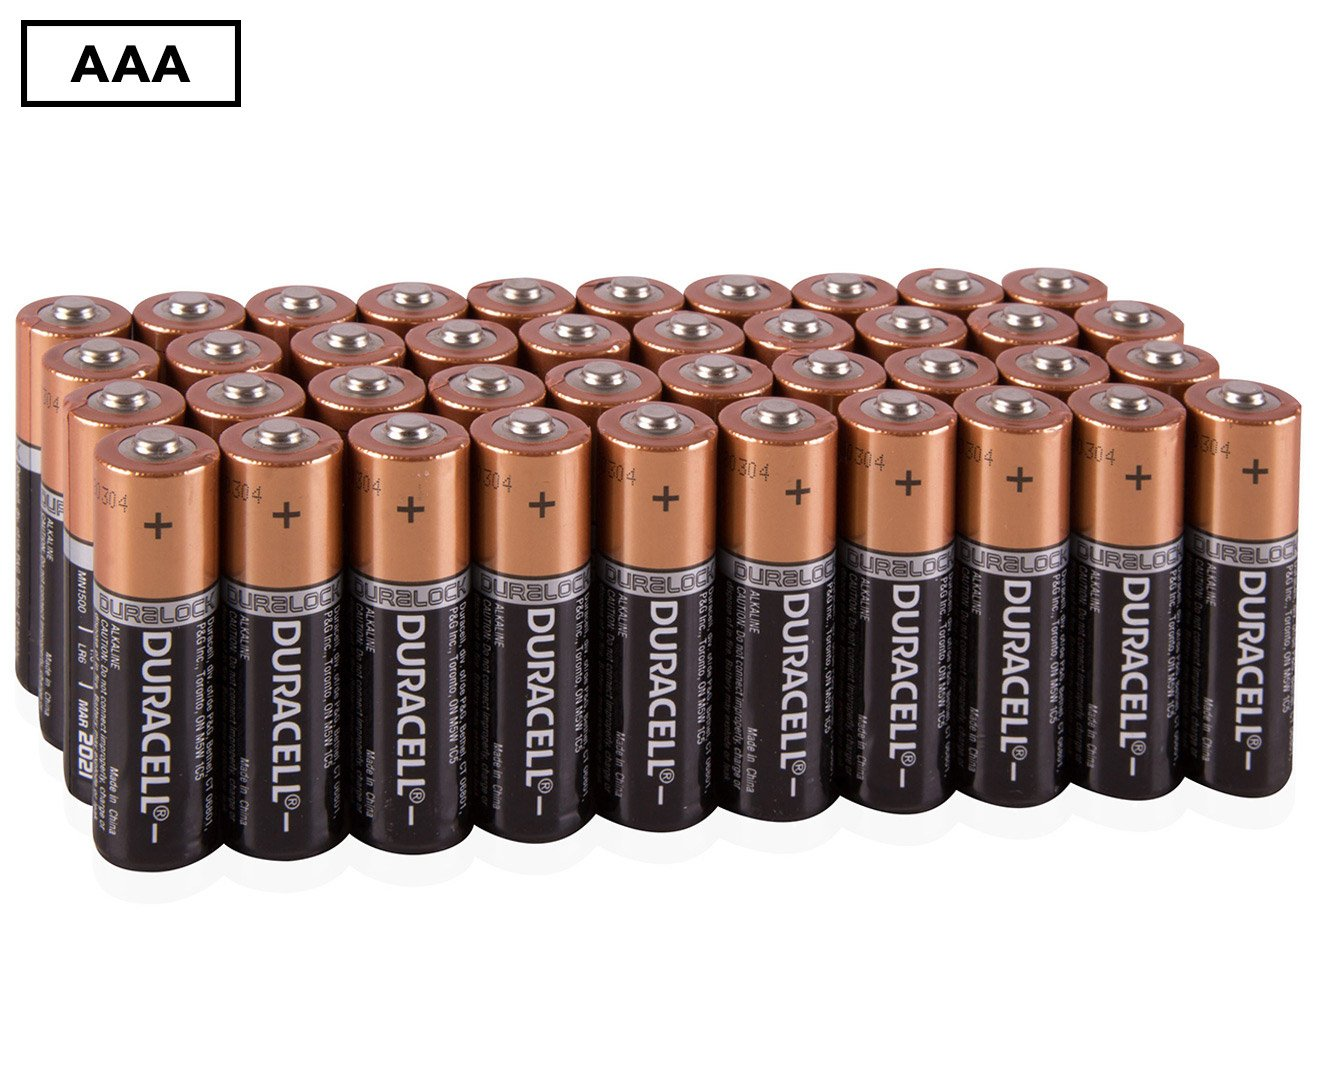 Amazon Com Duracell Mn1500 Duralock Copper Top Alkaline